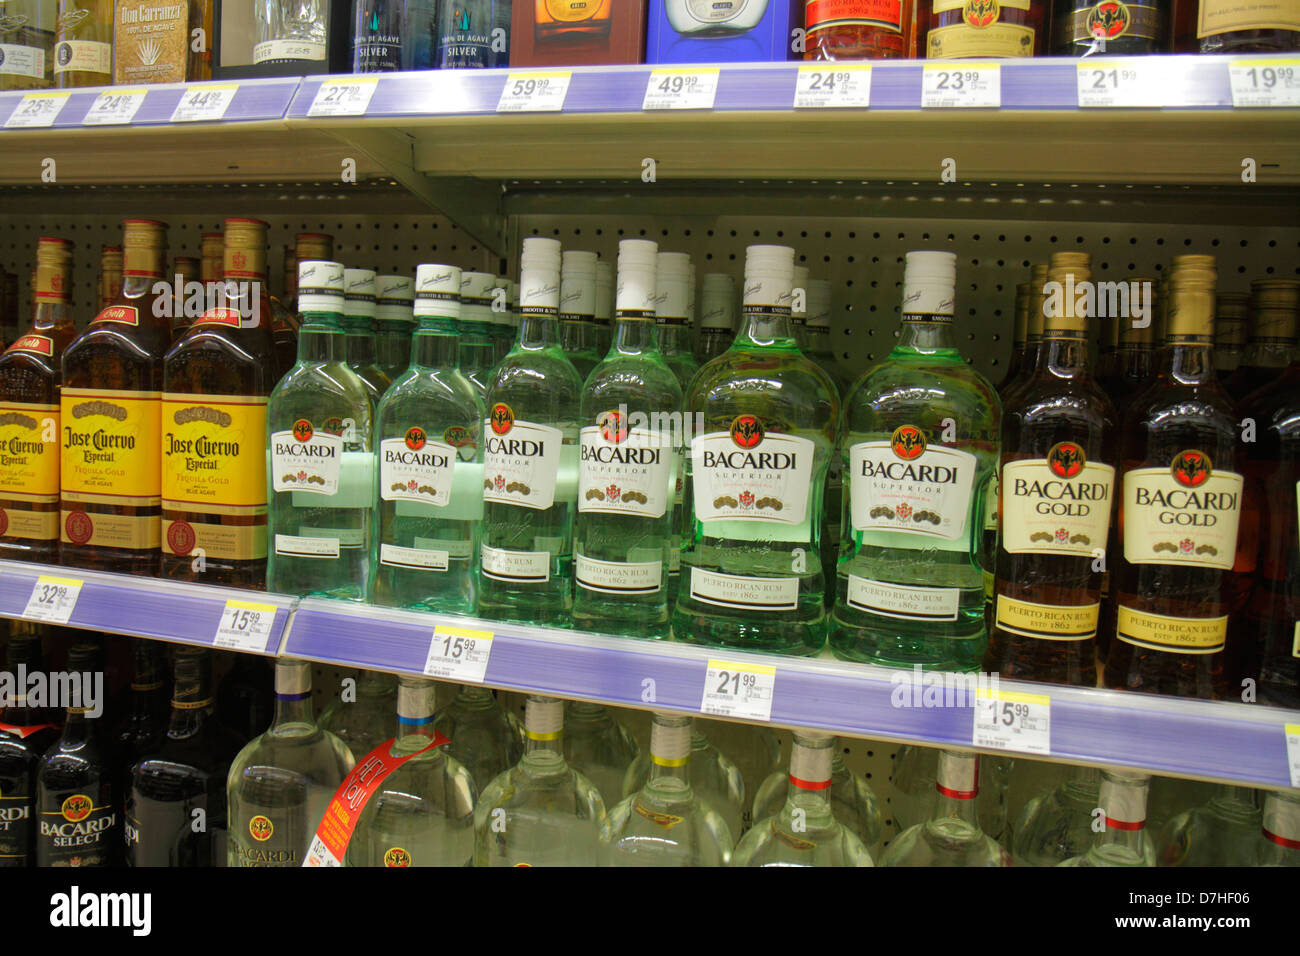 Miami Beach Florida Walgreens Liquor Store Shelves Retail